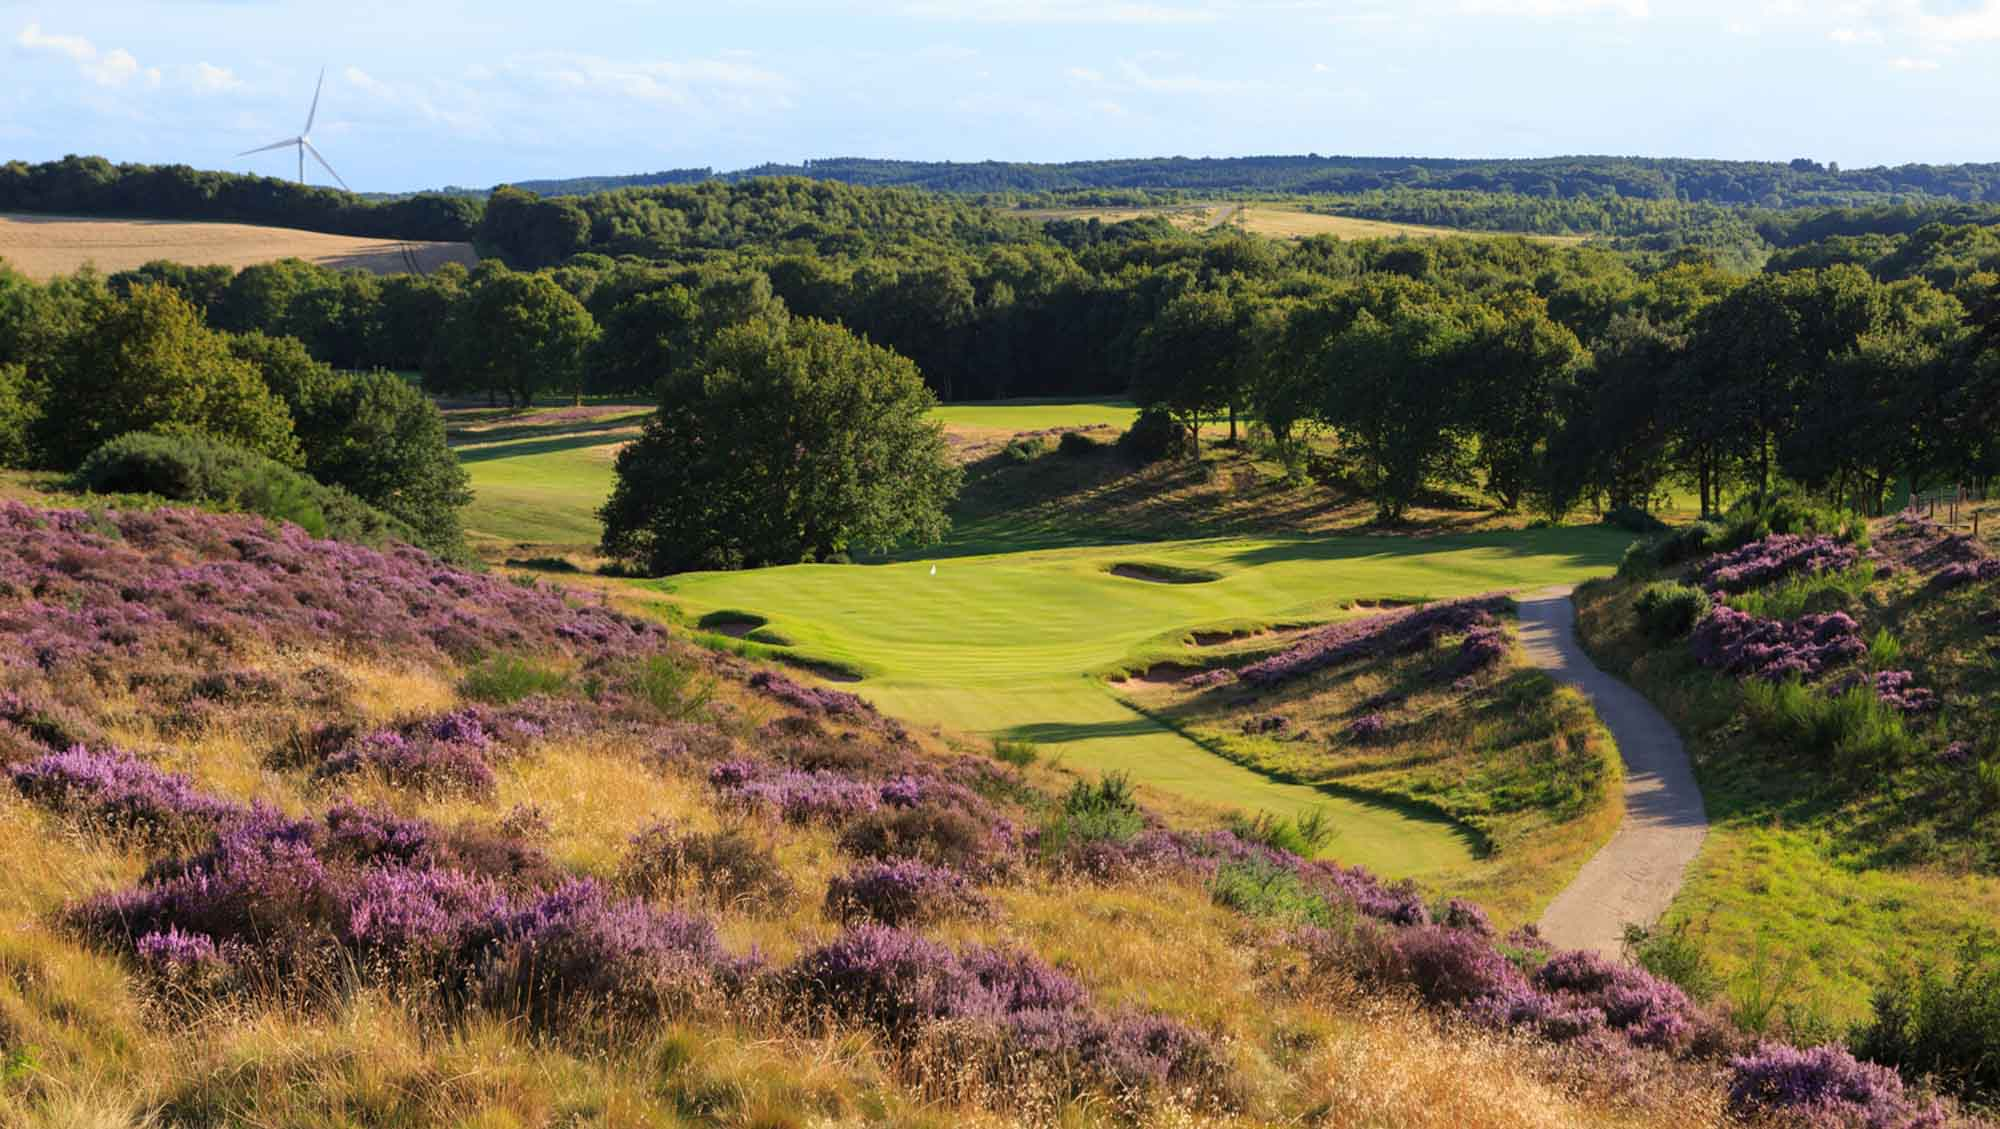 The heather clad 13th hole at Notts Golf Club - Hollinwell.